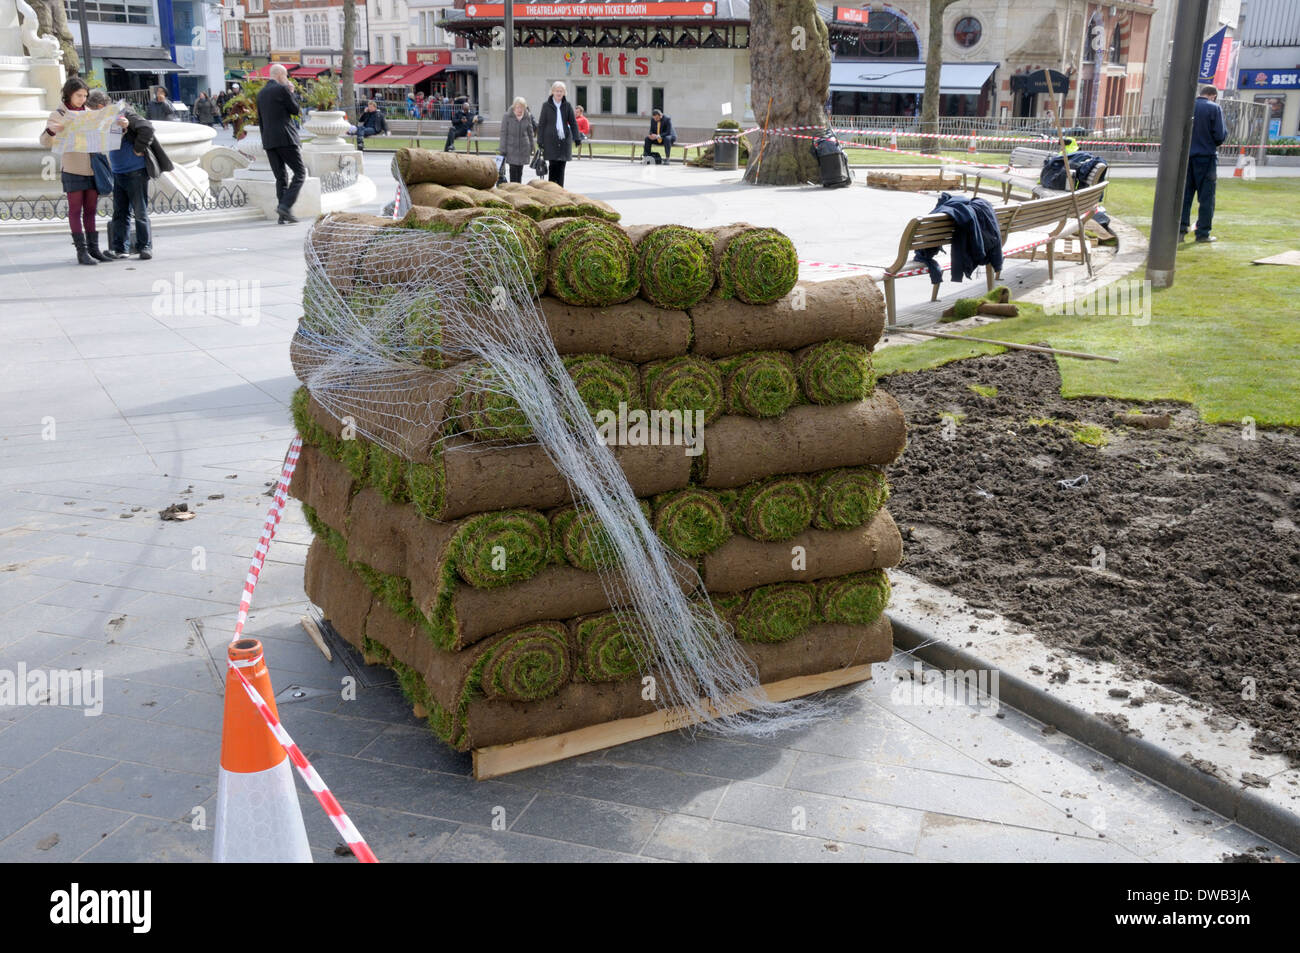 London, England, UK. Laying new turf in Leicester Square (March 2014) - Stock Image